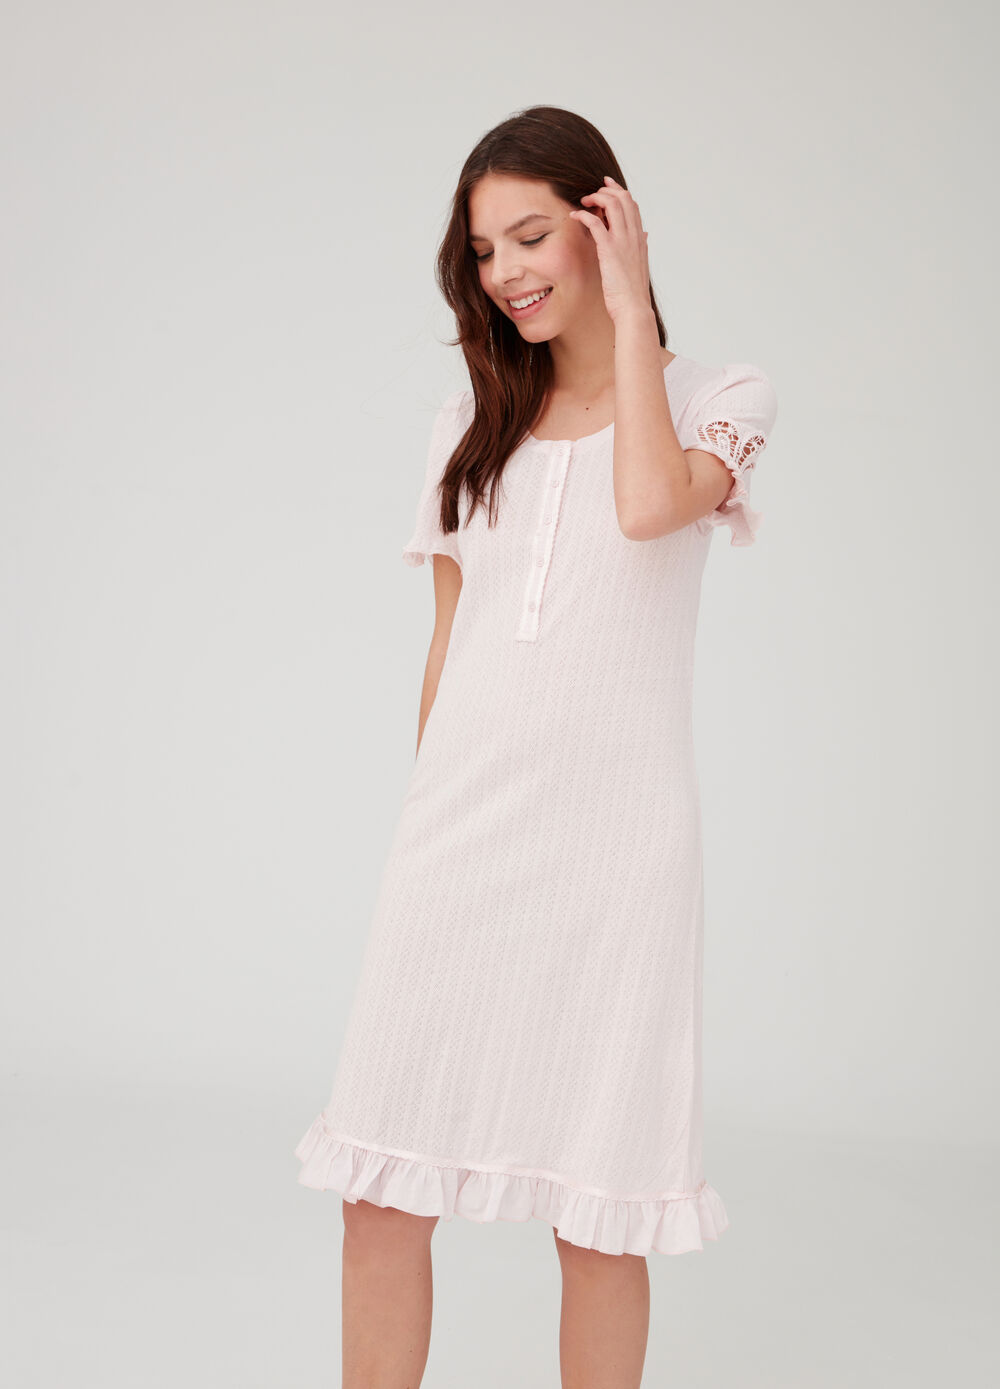 Nightshirt with crochet inserts and frills.